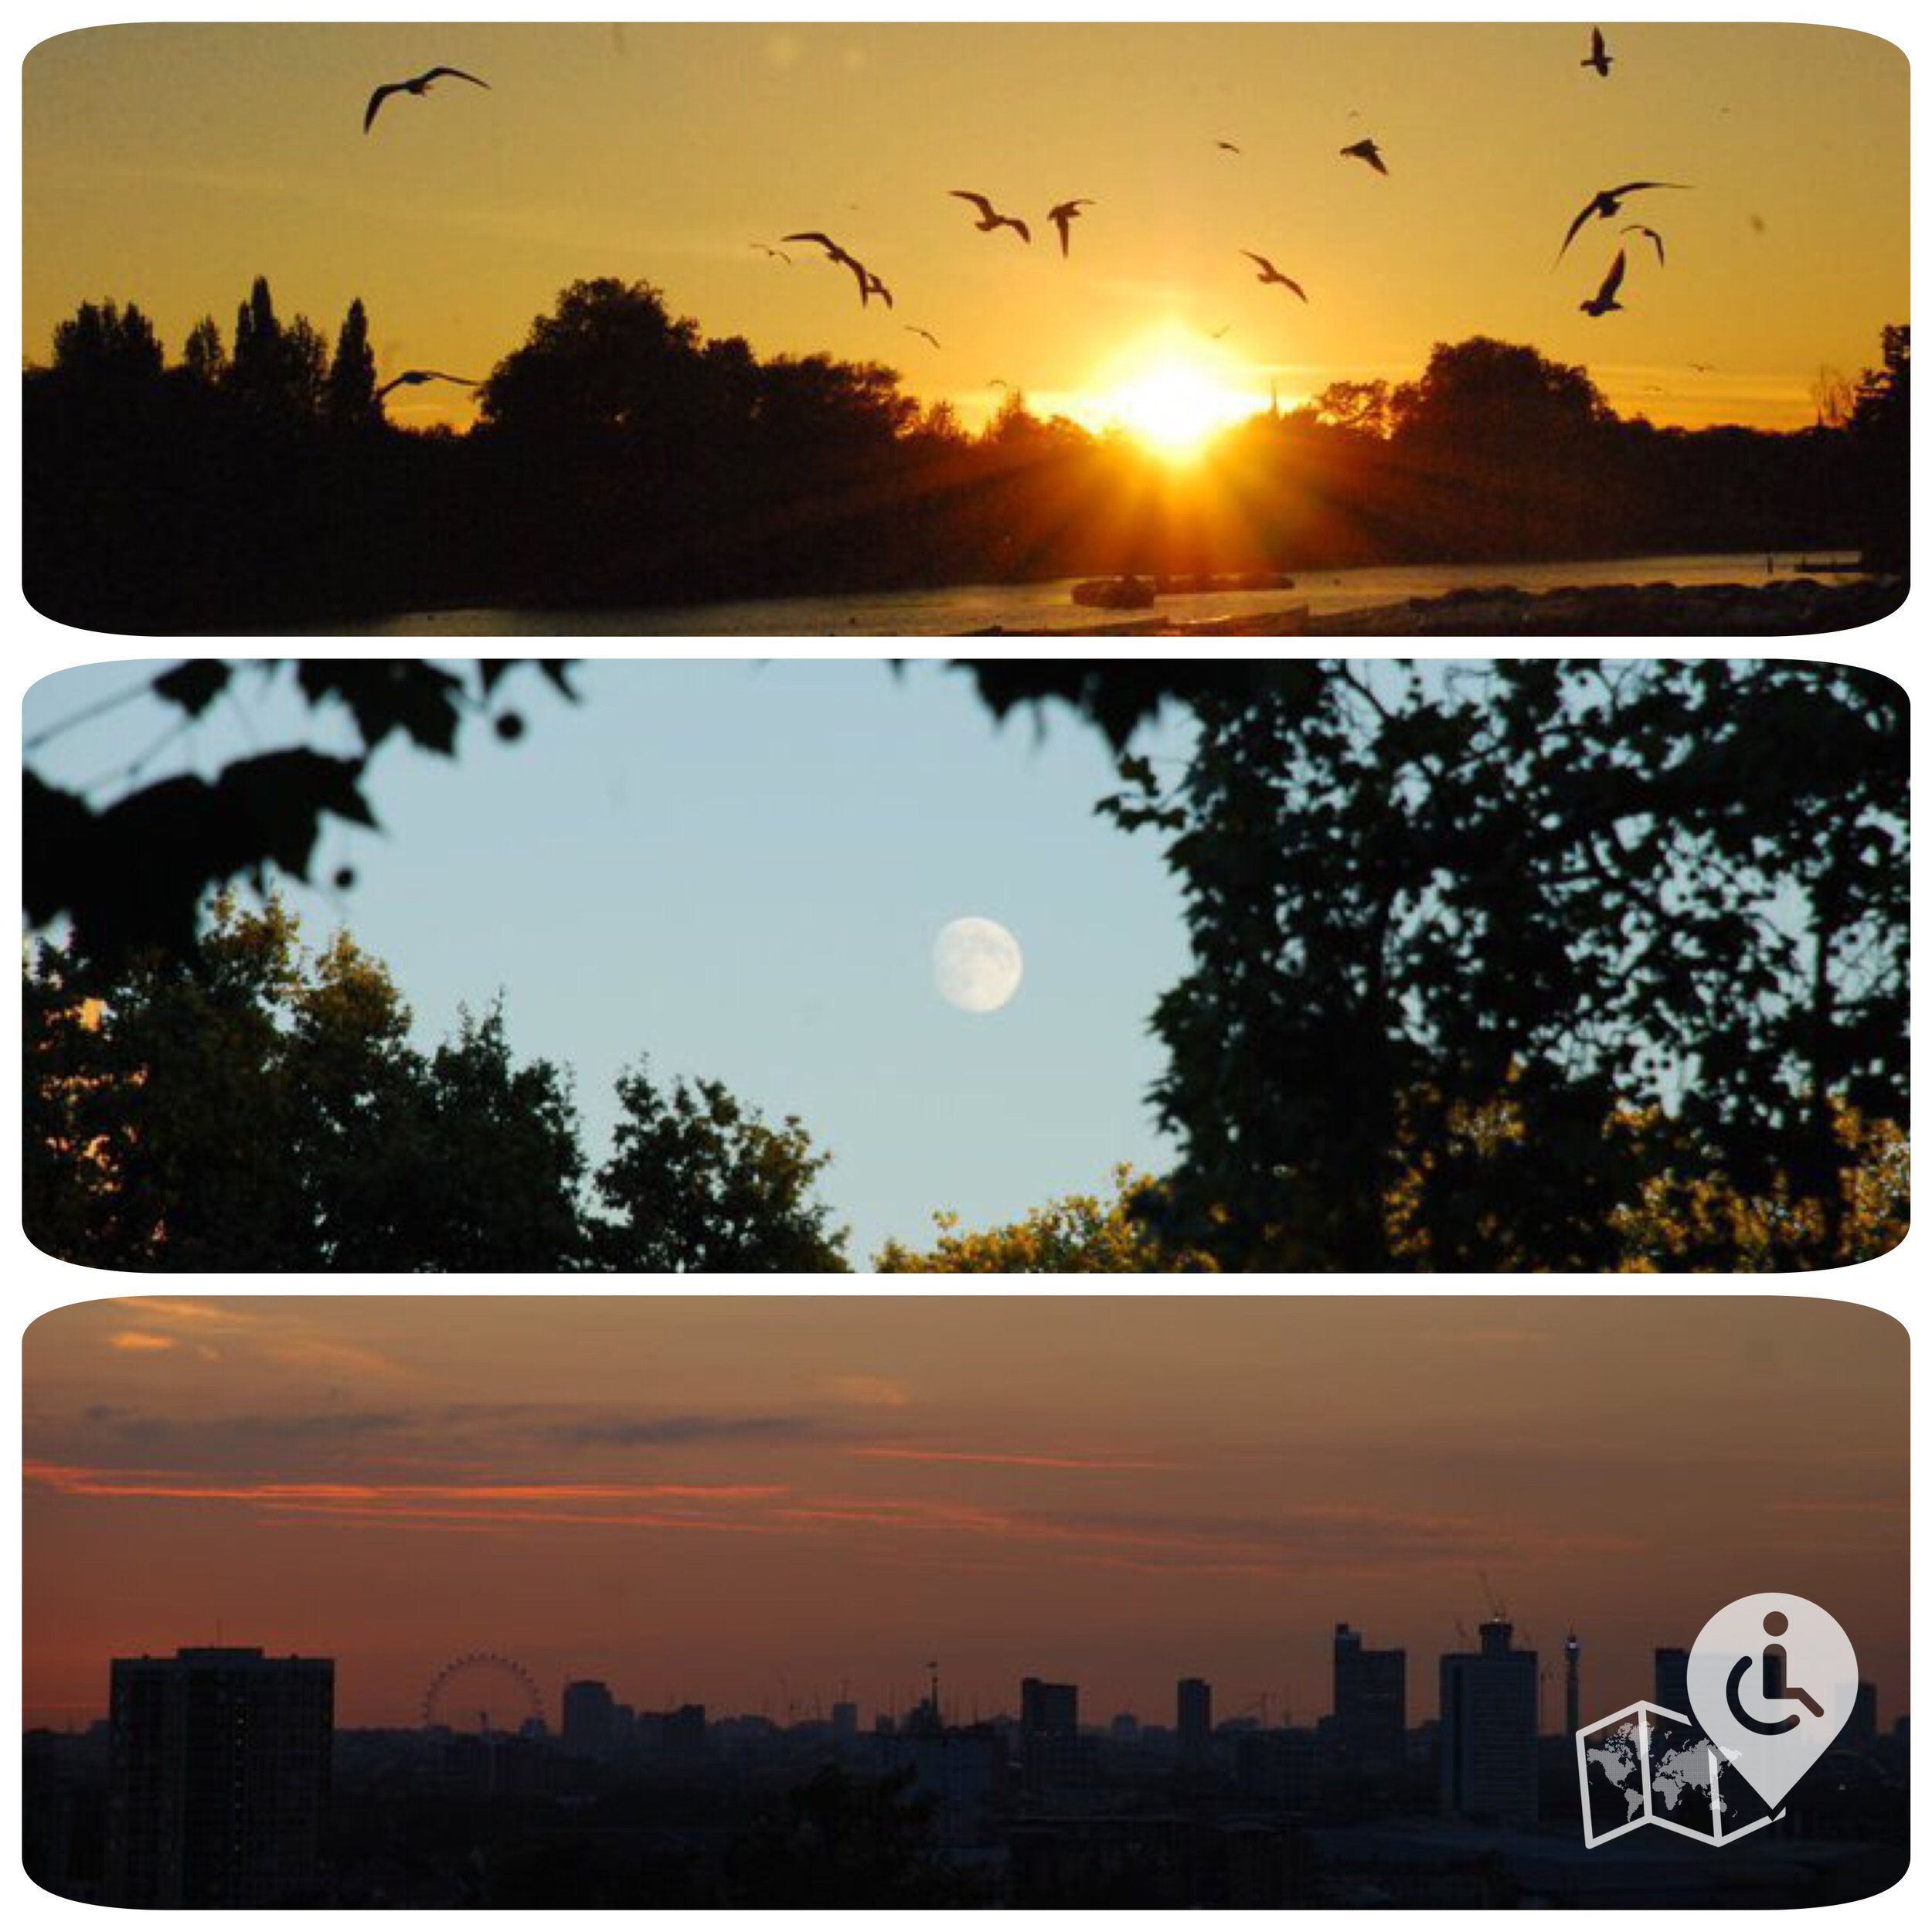 Hyde Park and Greenwich Park are great options to chill out and enjoy some nature.